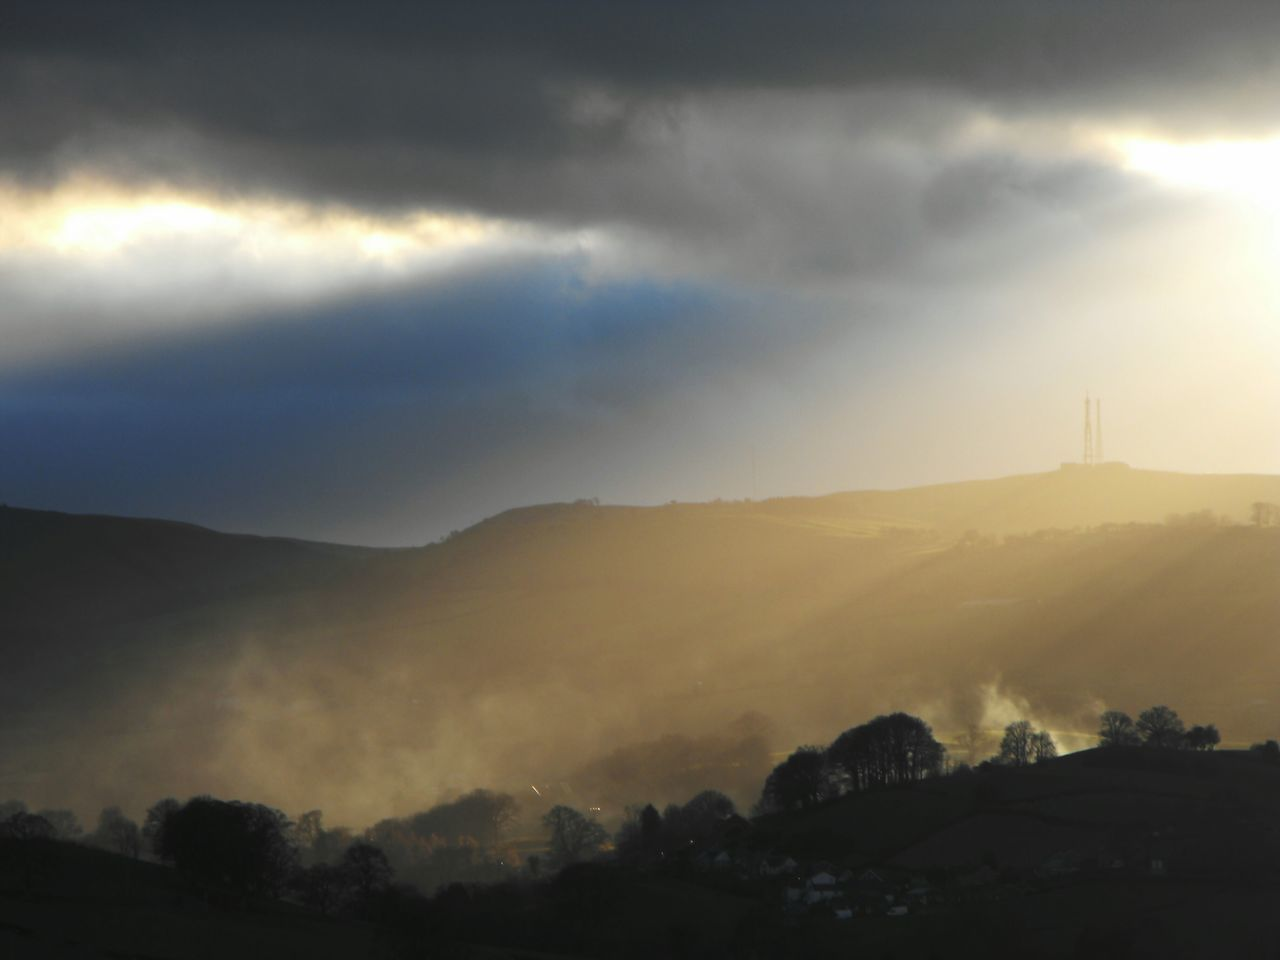 ... Evening Light Miles Away Newtown Powys Mountain Nature Sunbeam Tree Sunset Sunlight Fog Landscape Silhouette Tranquility Cloud - Sky Beauty In Nature Forest Dramatic Sky No People Scenics Outdoors Sky Beams Of Light Rays Of Light Beautiful